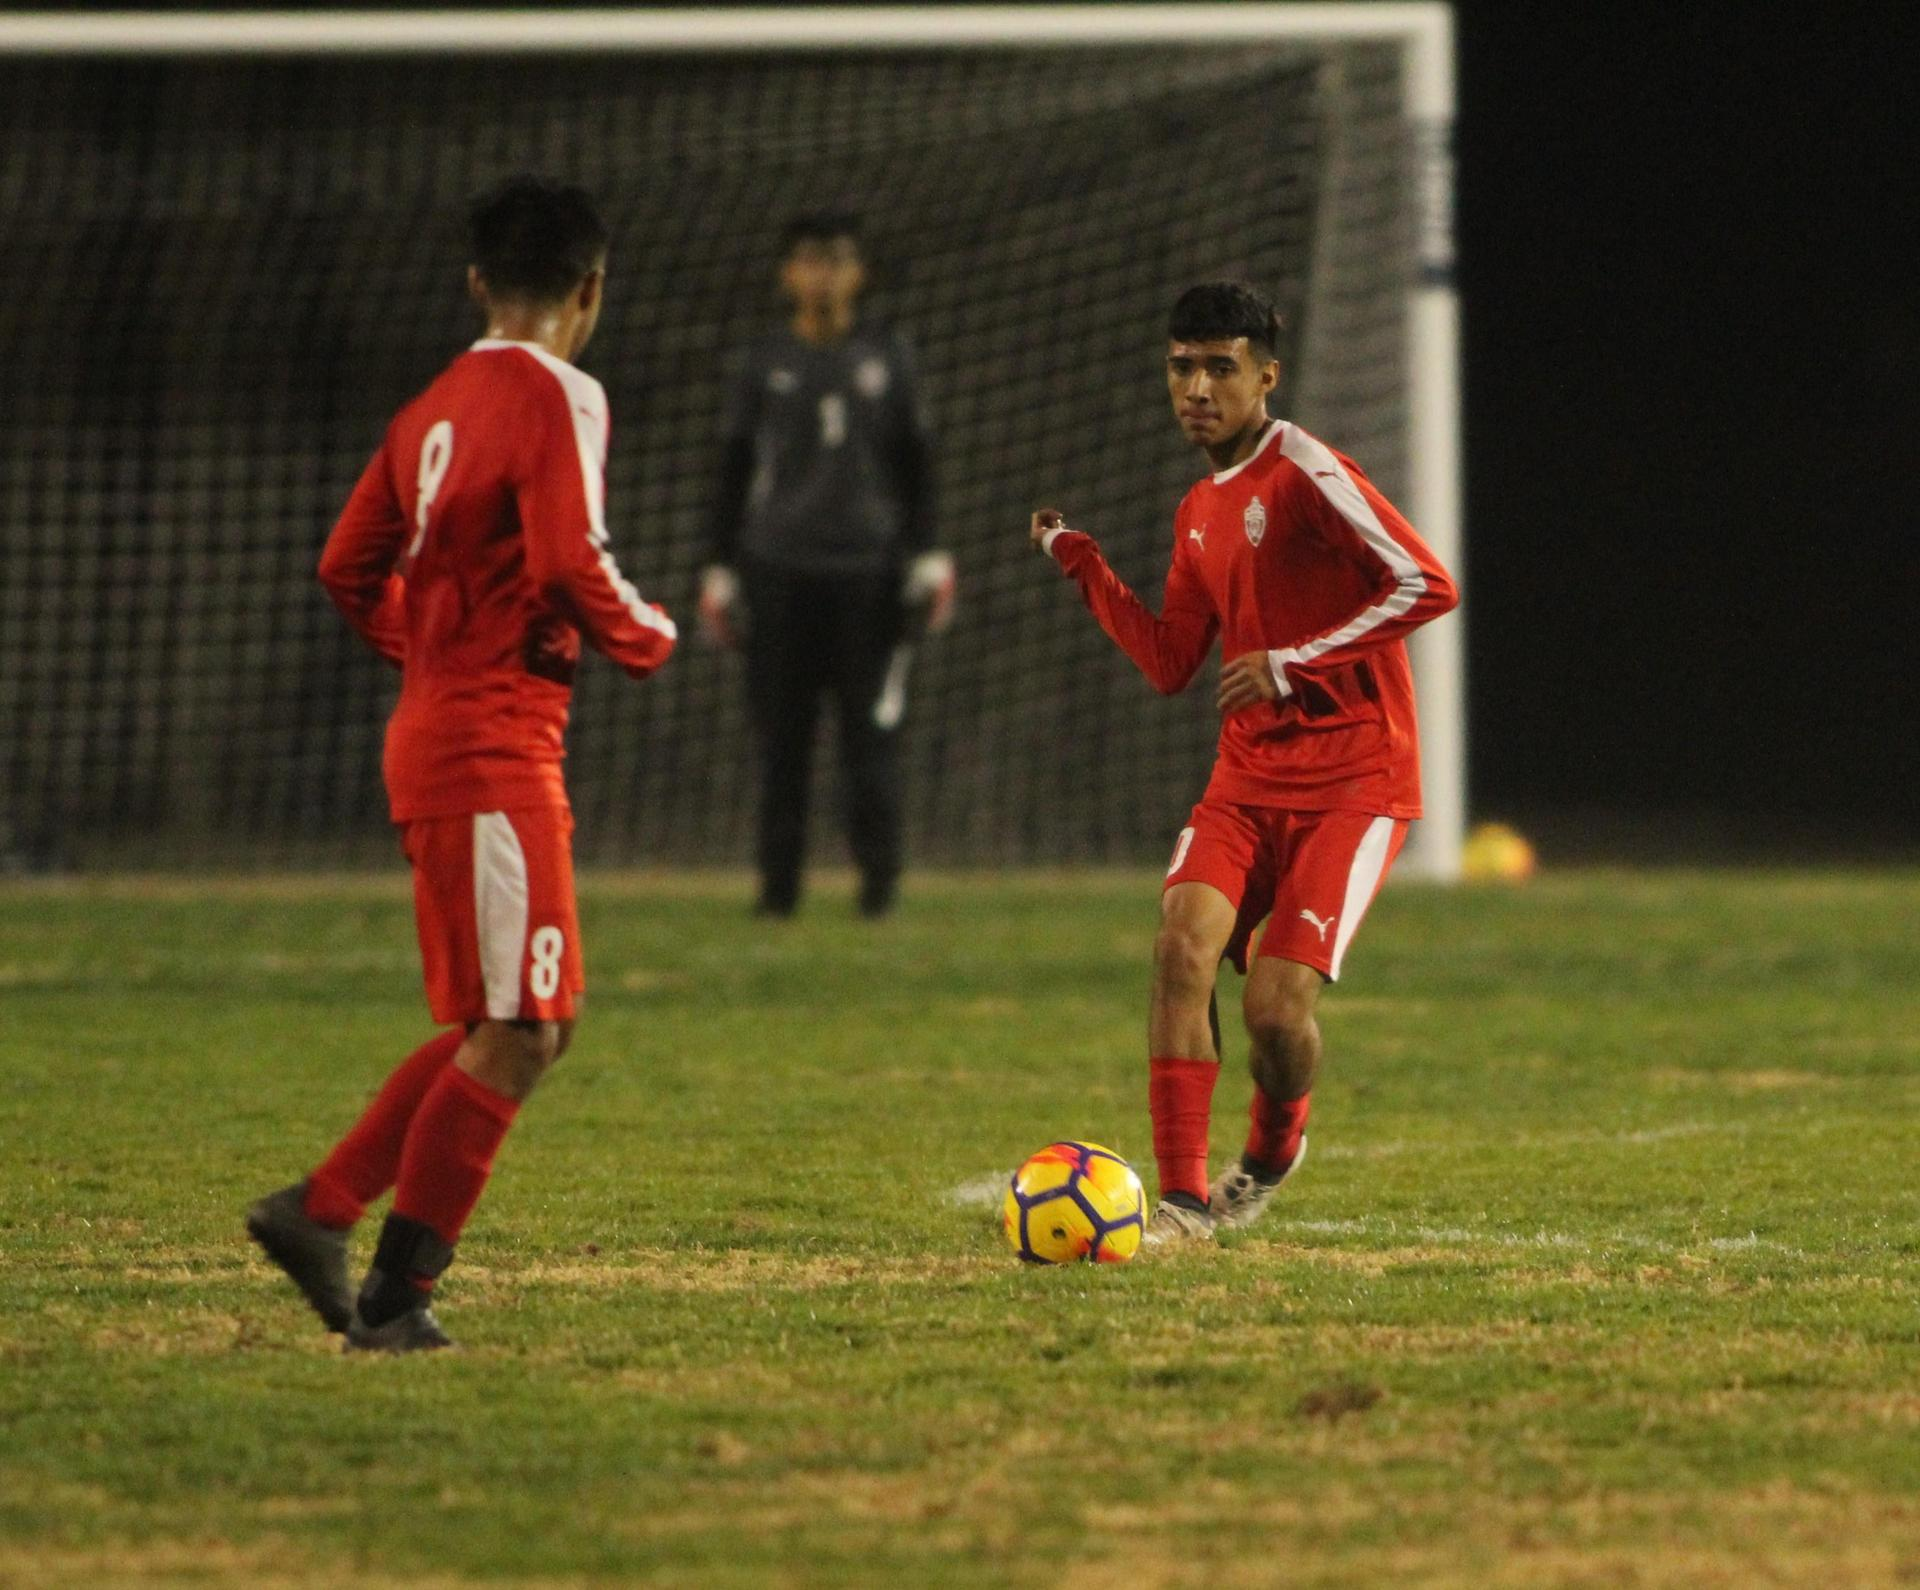 Favian Casillas and Jacob Corchado running with the ball